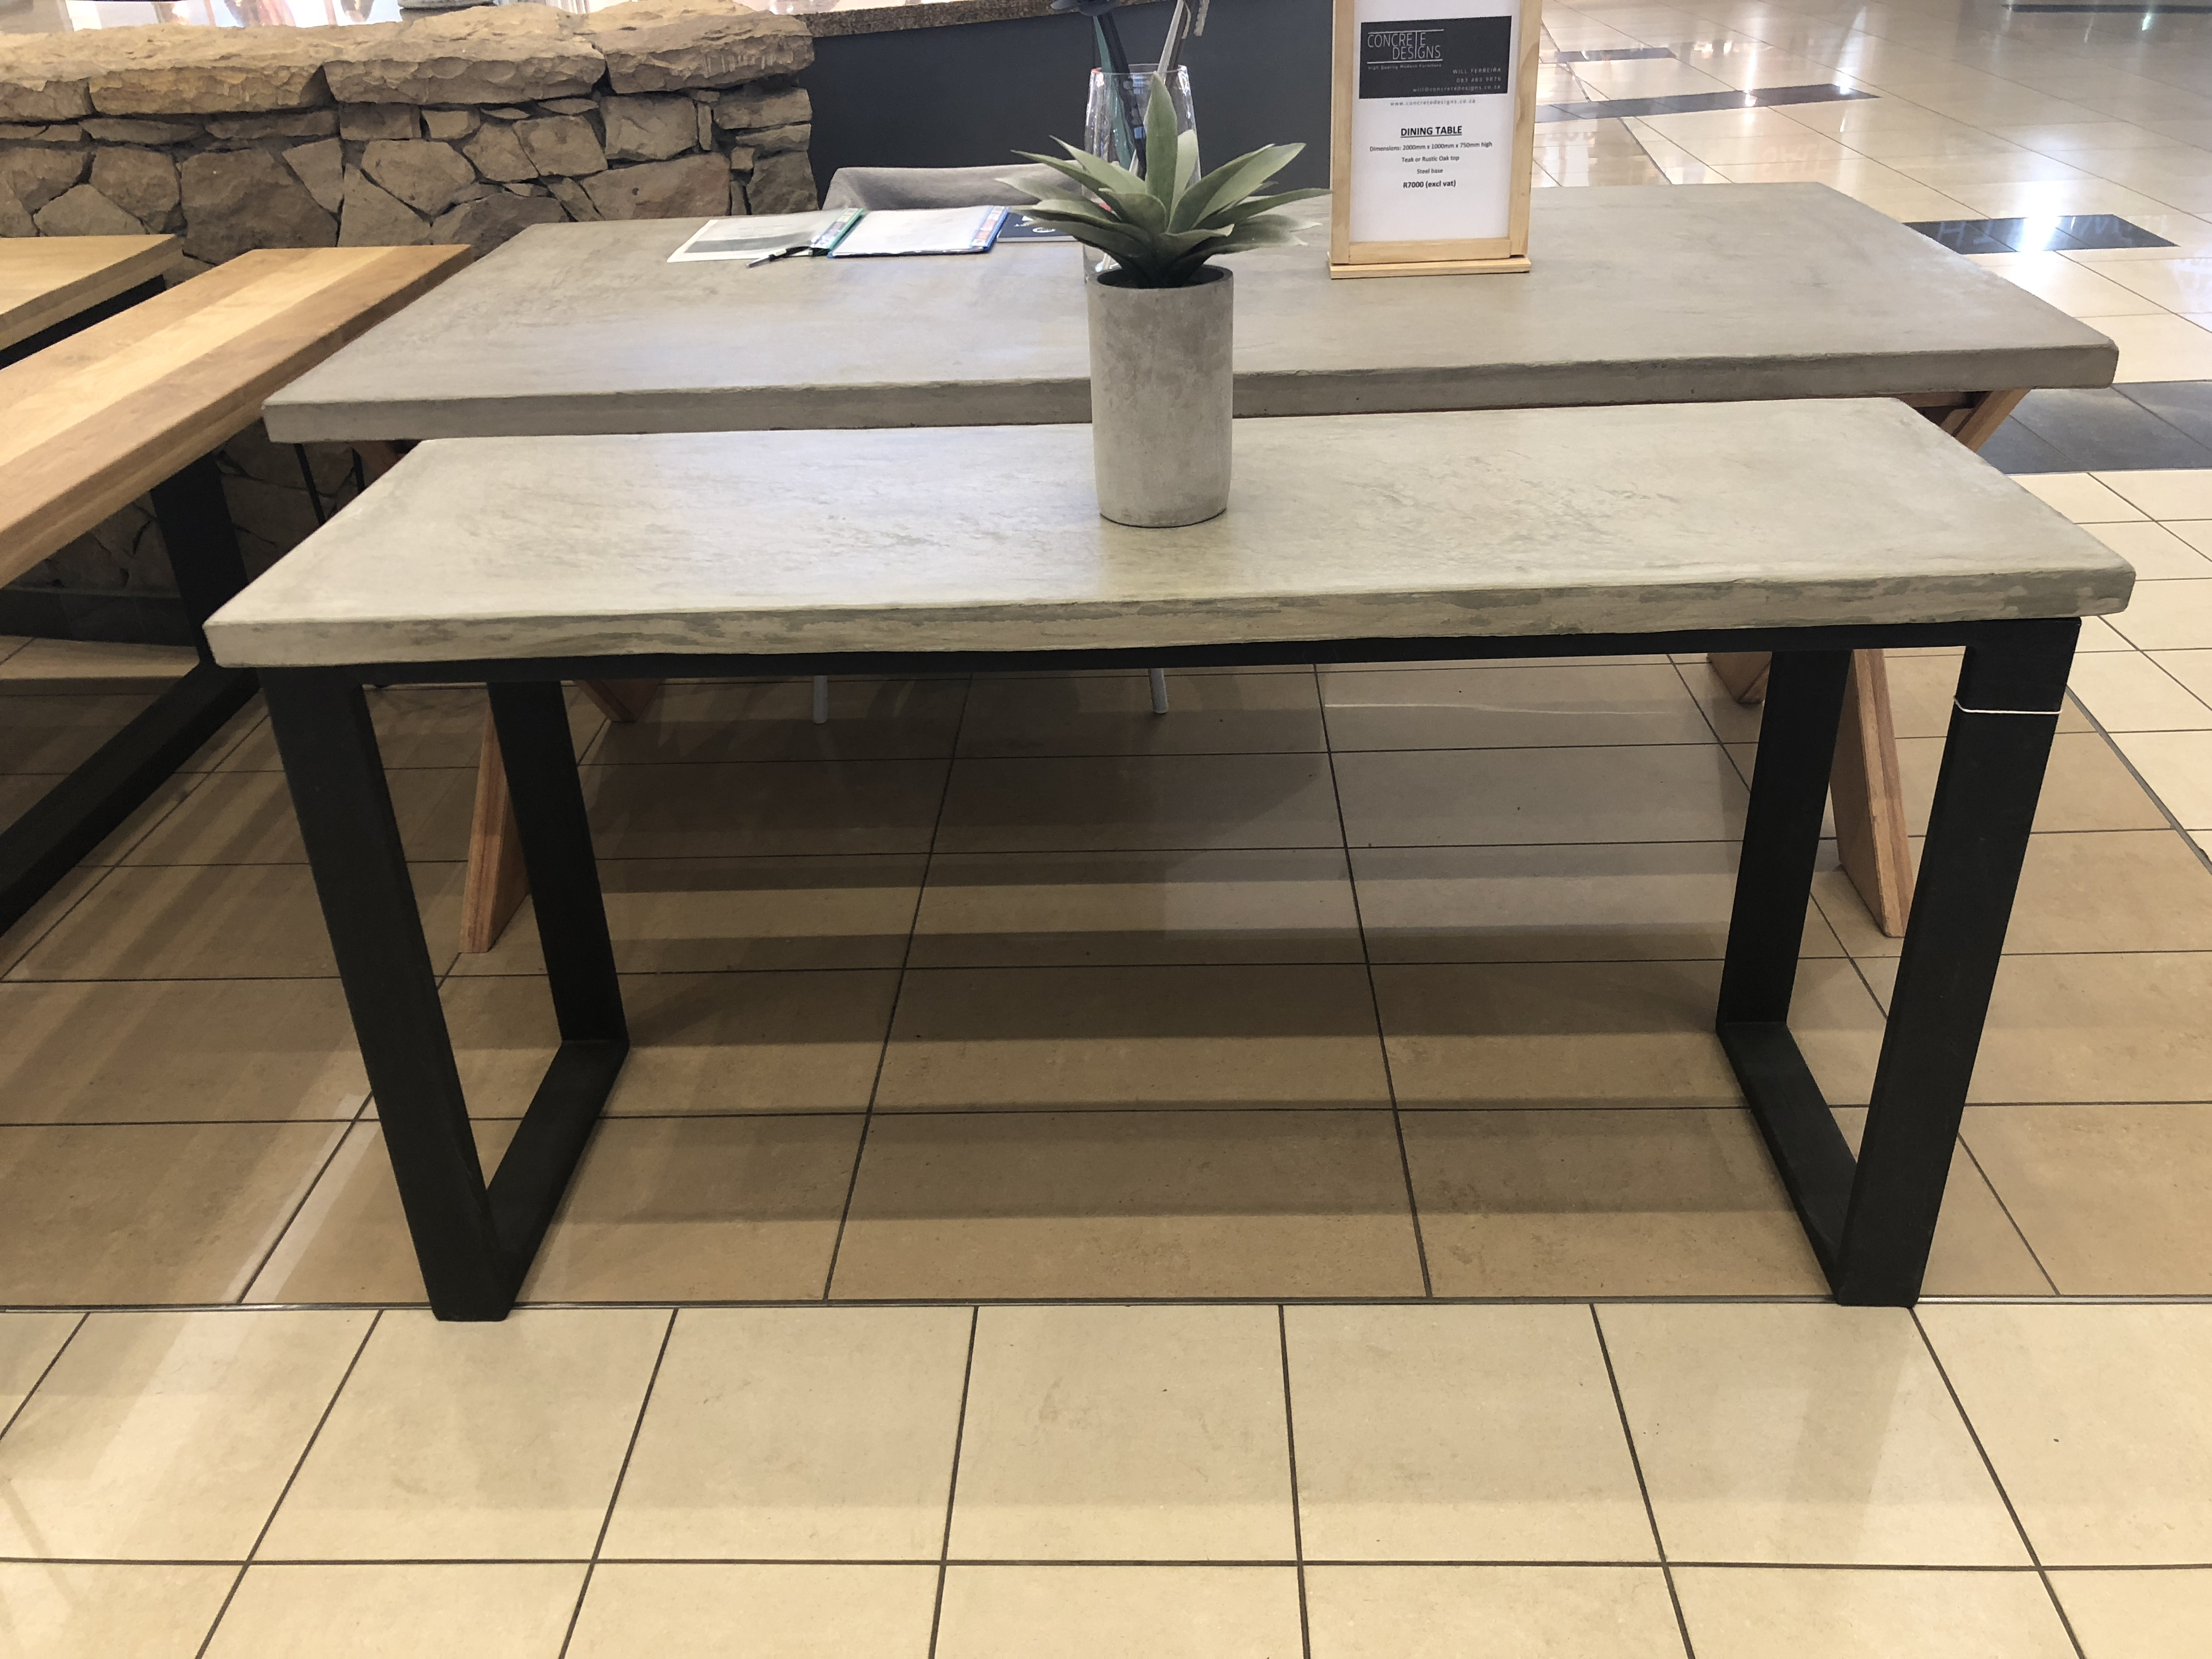 Concrete Designs - Butchers Block